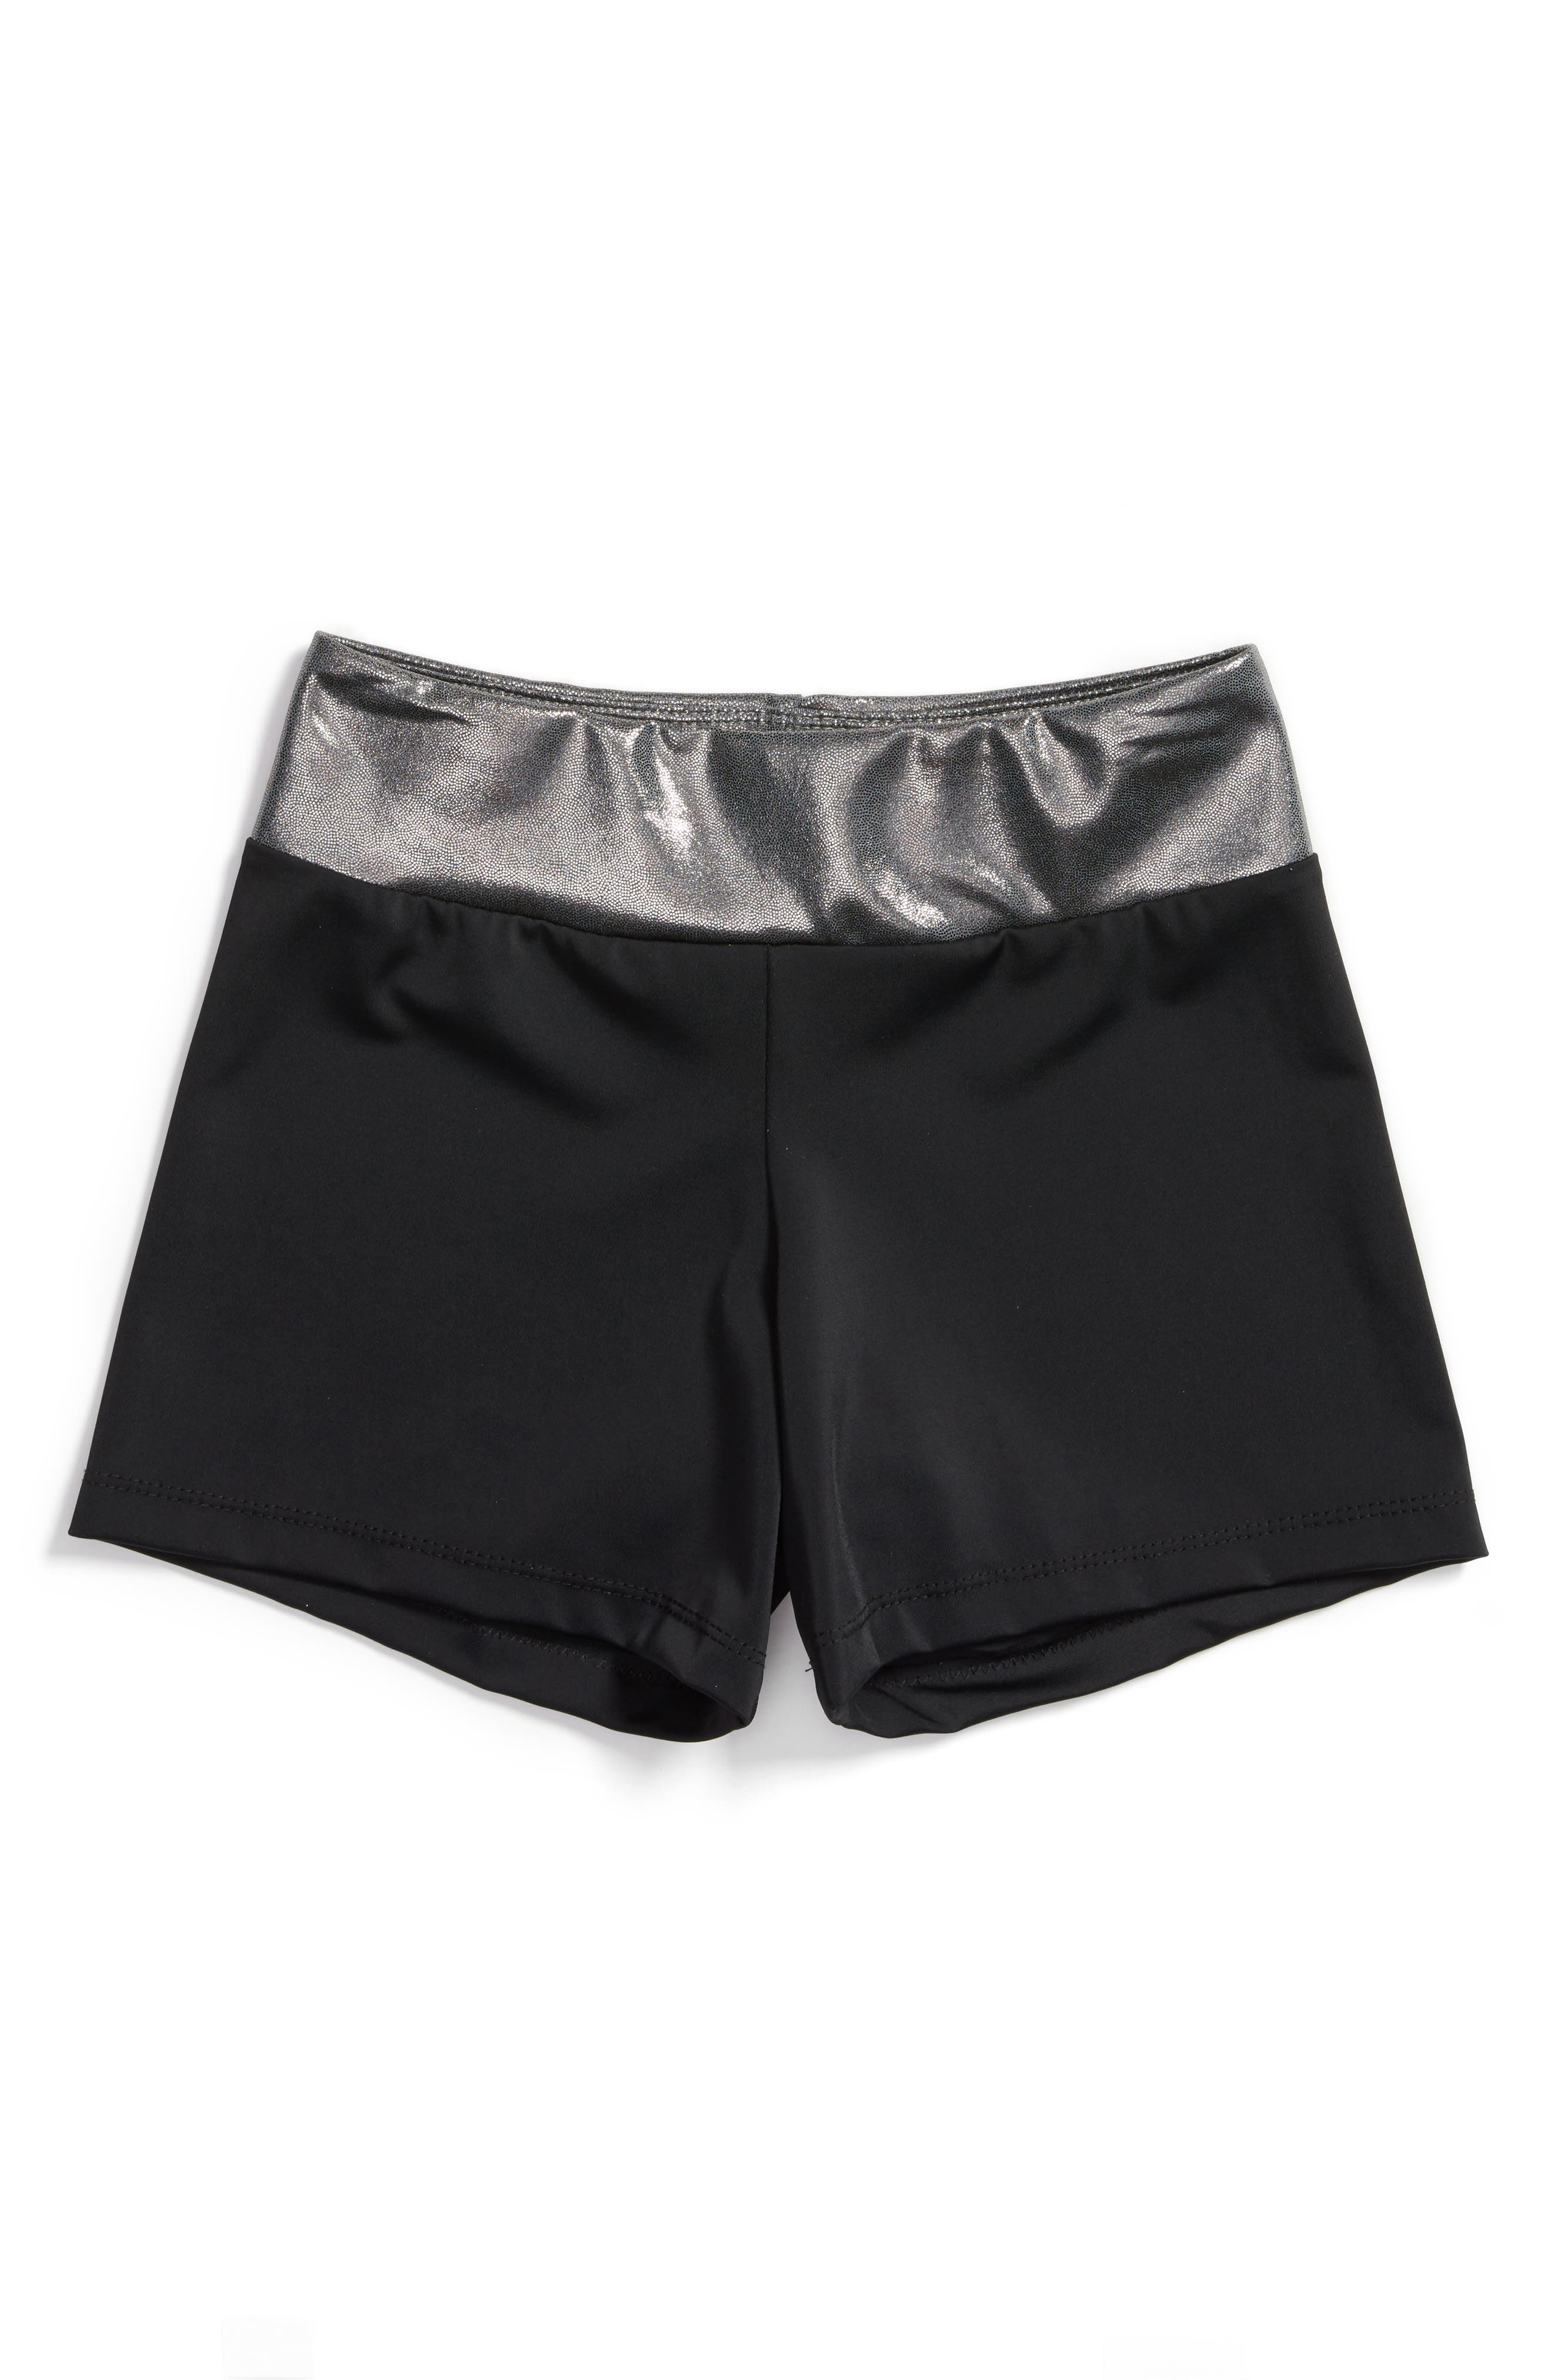 Alternate Image 1 Selected - GP Sport Girl Power Stretch Shorts (Little Girls & Big Girls)